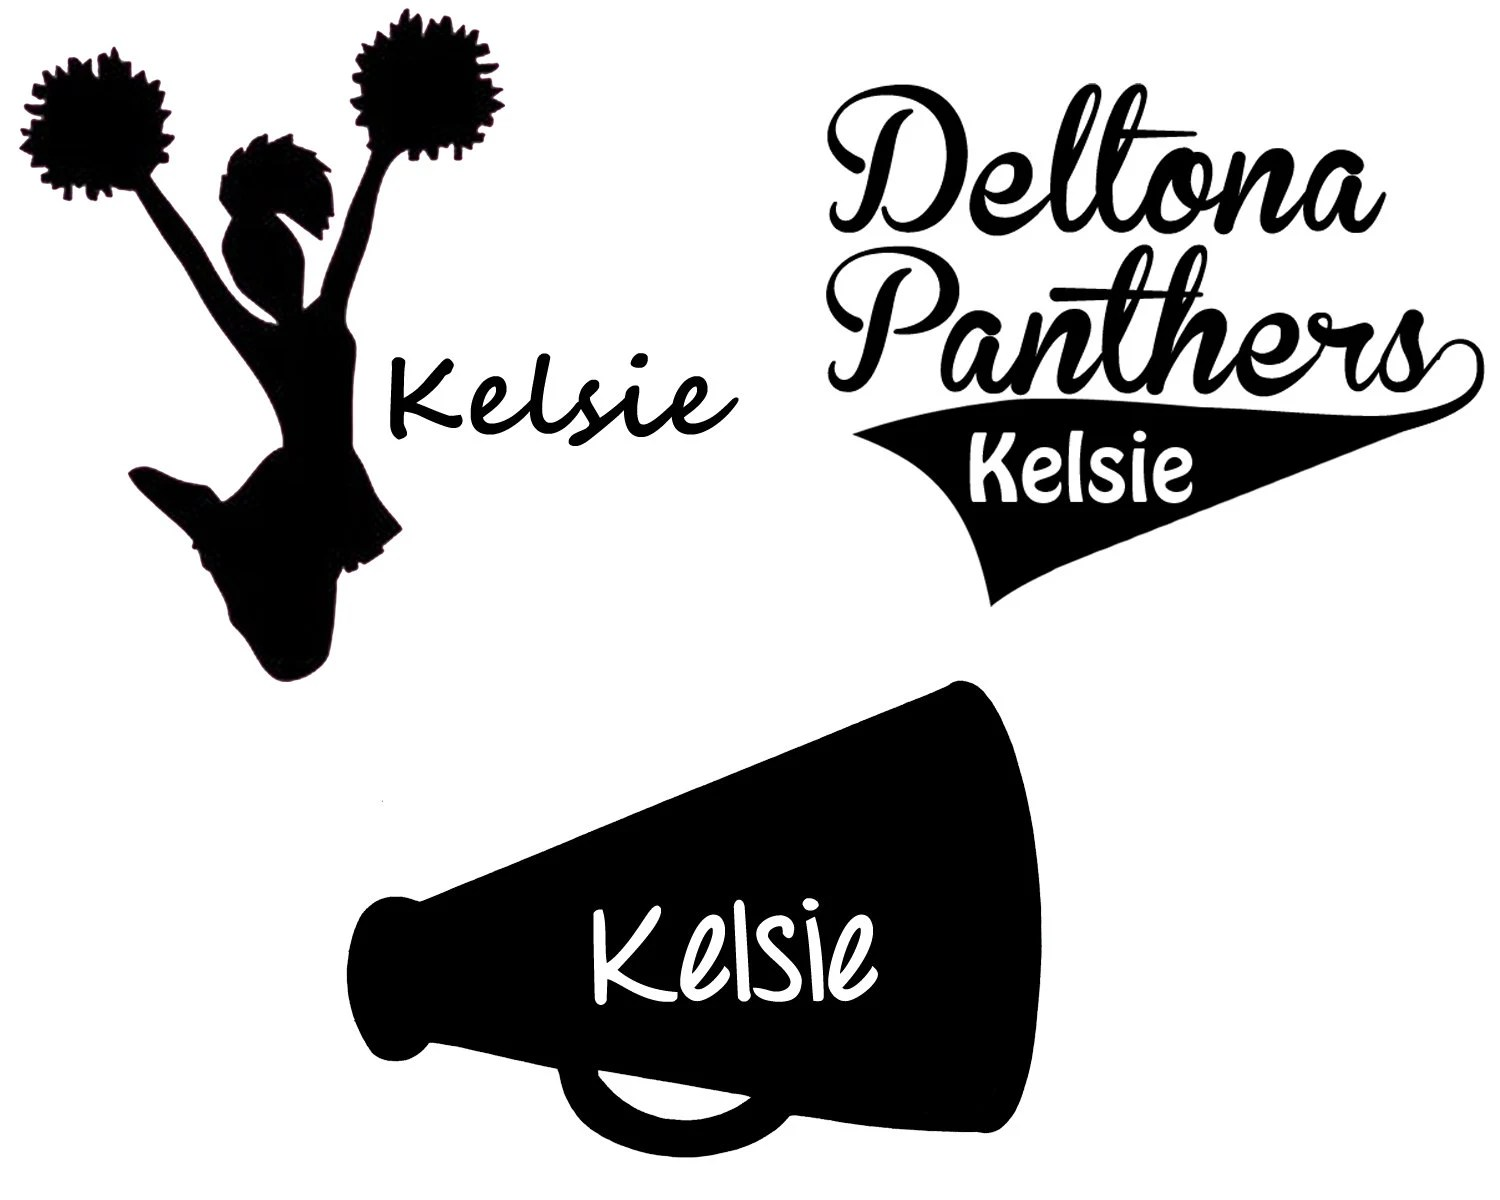 Cheerleading Car Decal Personalized Cheerleader By Mommydecals